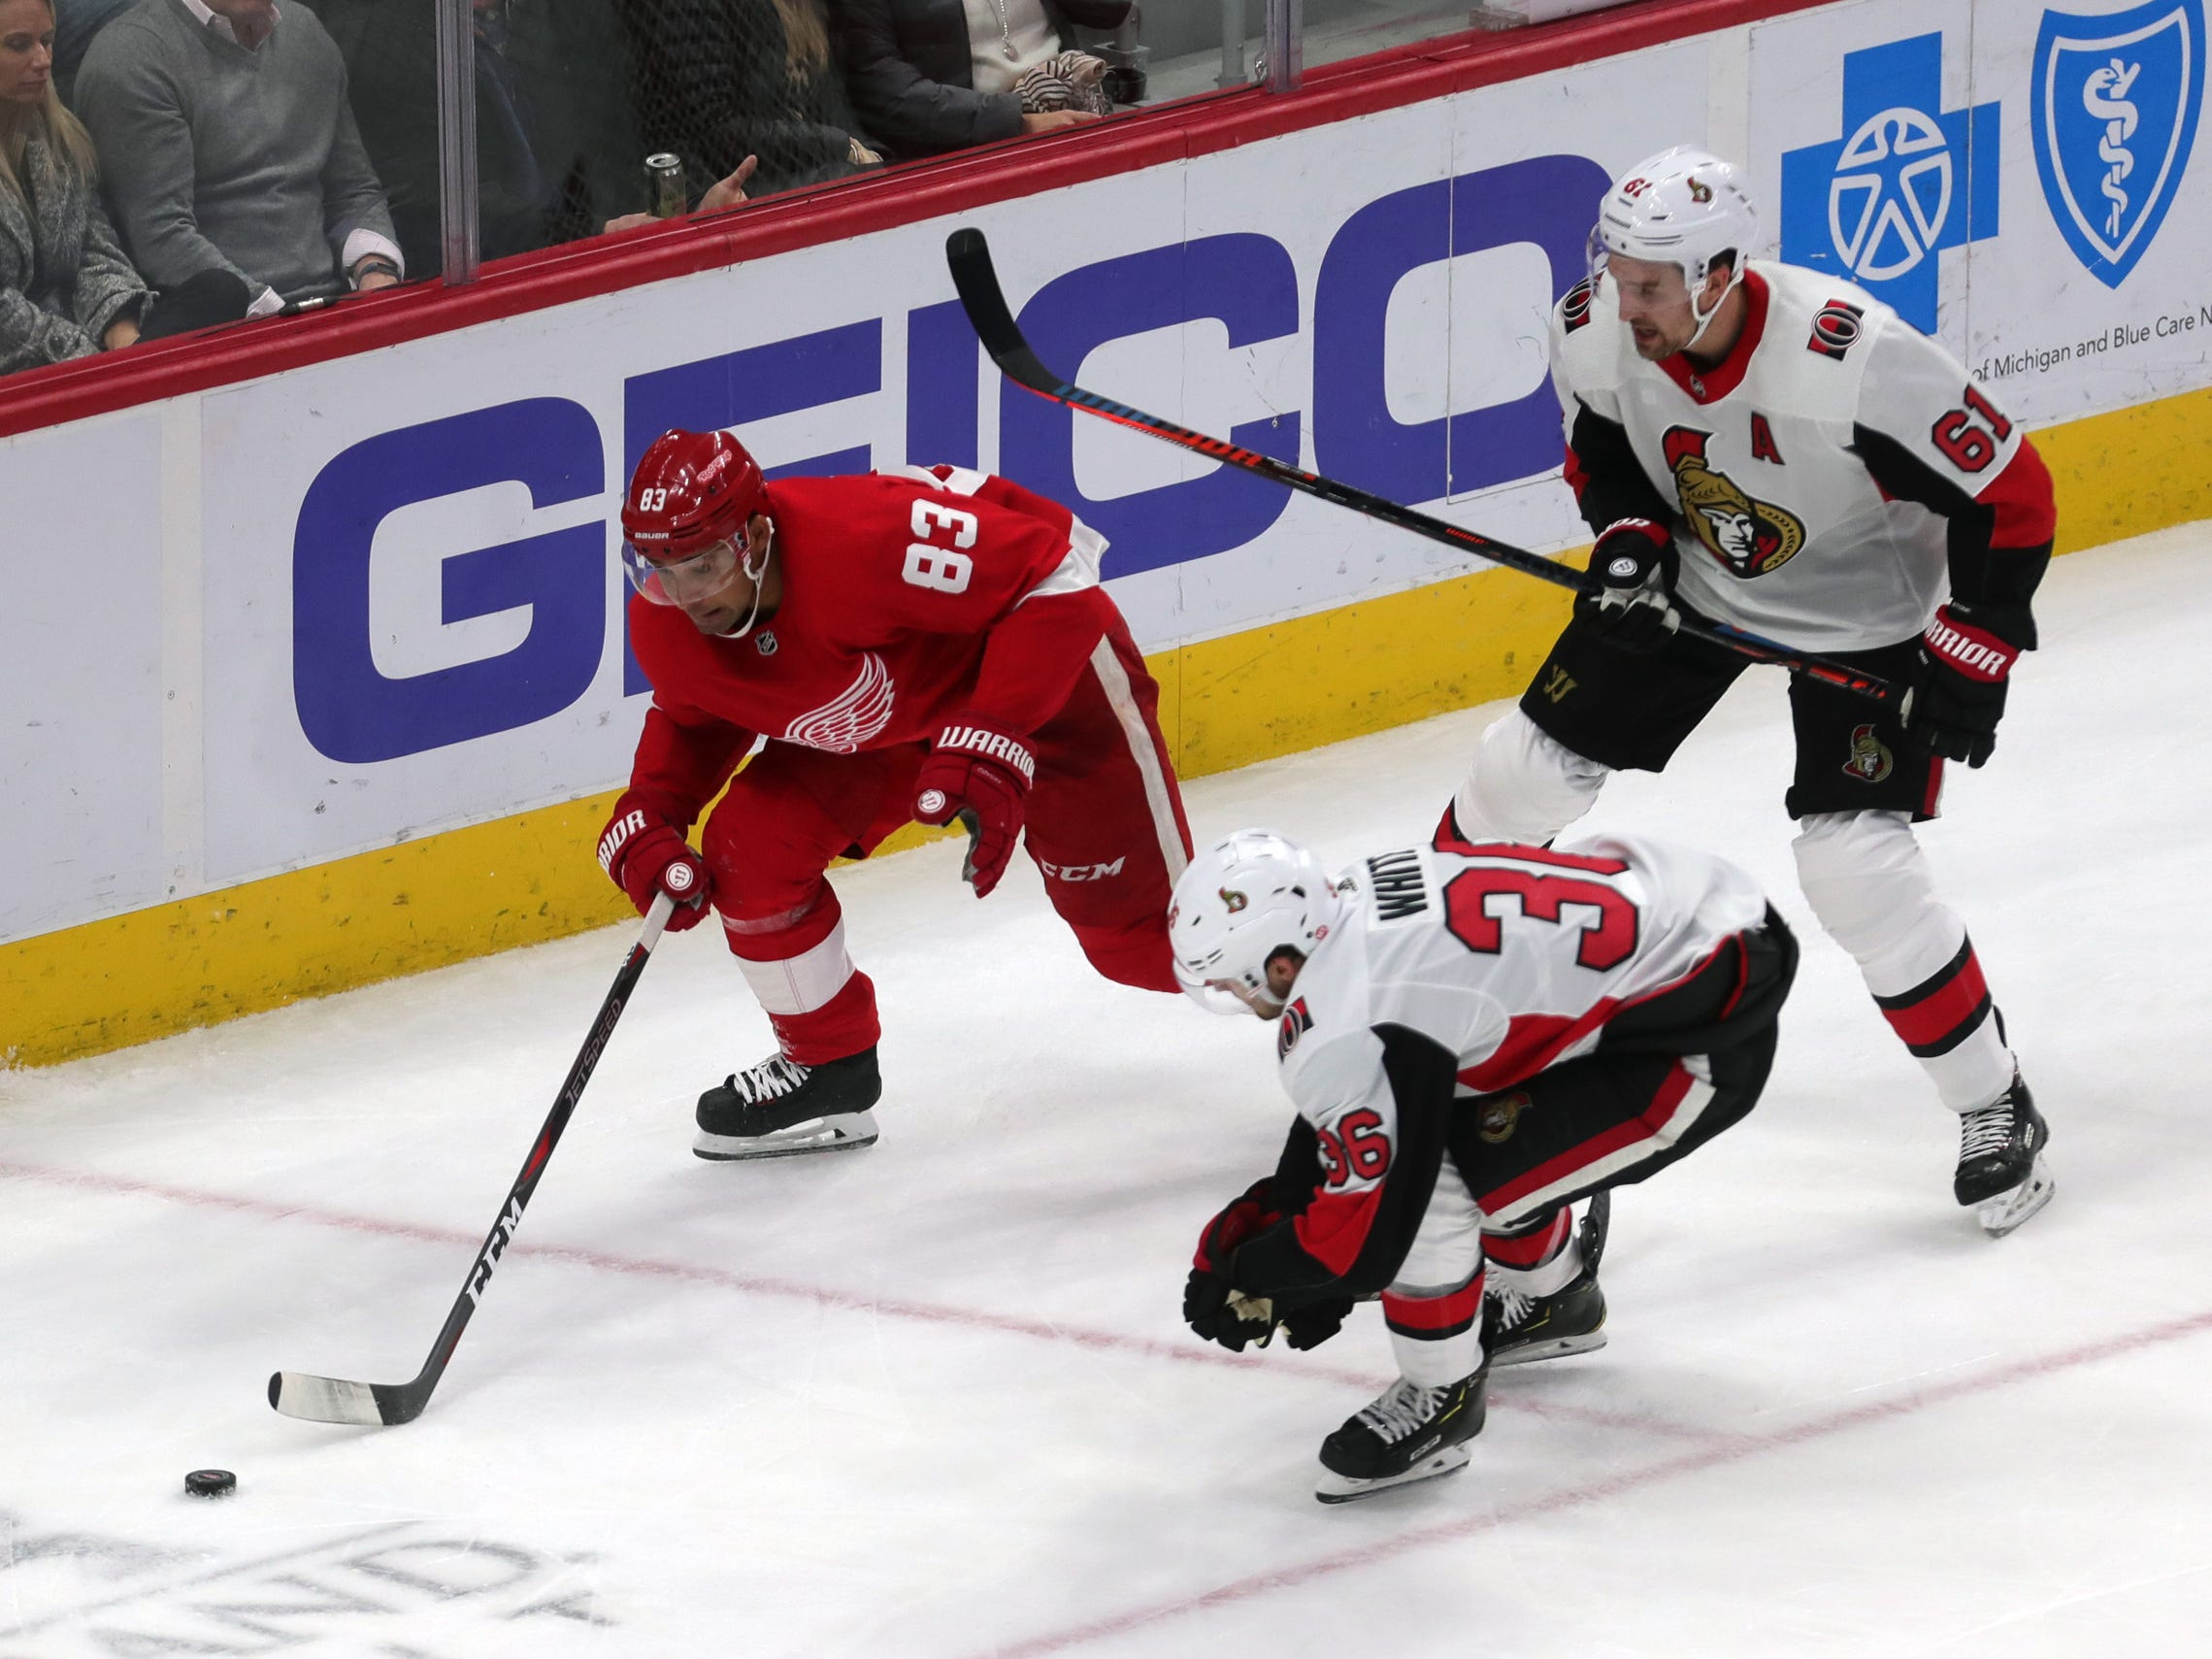 Red Wings defenseman Trevor Daley goes for the puck against Ottawa Senators center Colin White and right wing Mark Stone during second period action on Feb. 14, 2019 at Little Caesars Arena.